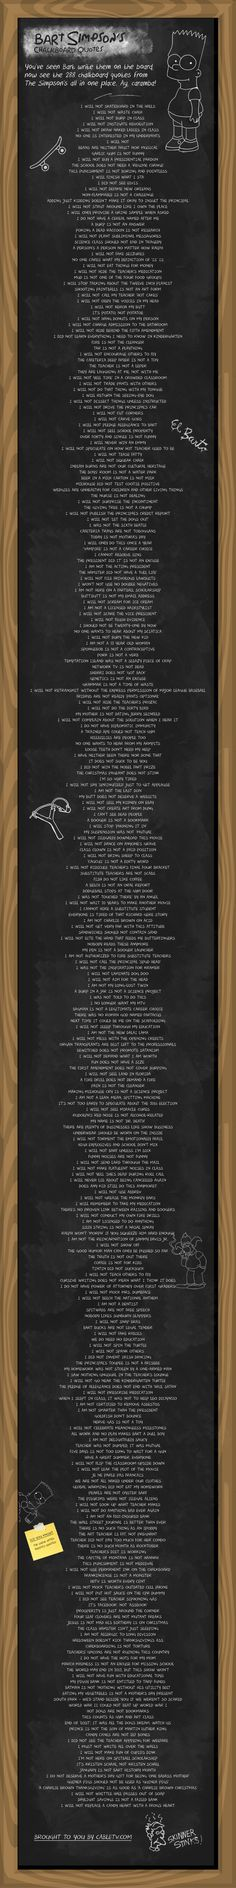 "Bart Simpson's Chalkboard Quotes. My favorites are ""Poking a dead raccoon is not research"" and ""Making Milhouse cry is not a science project""."